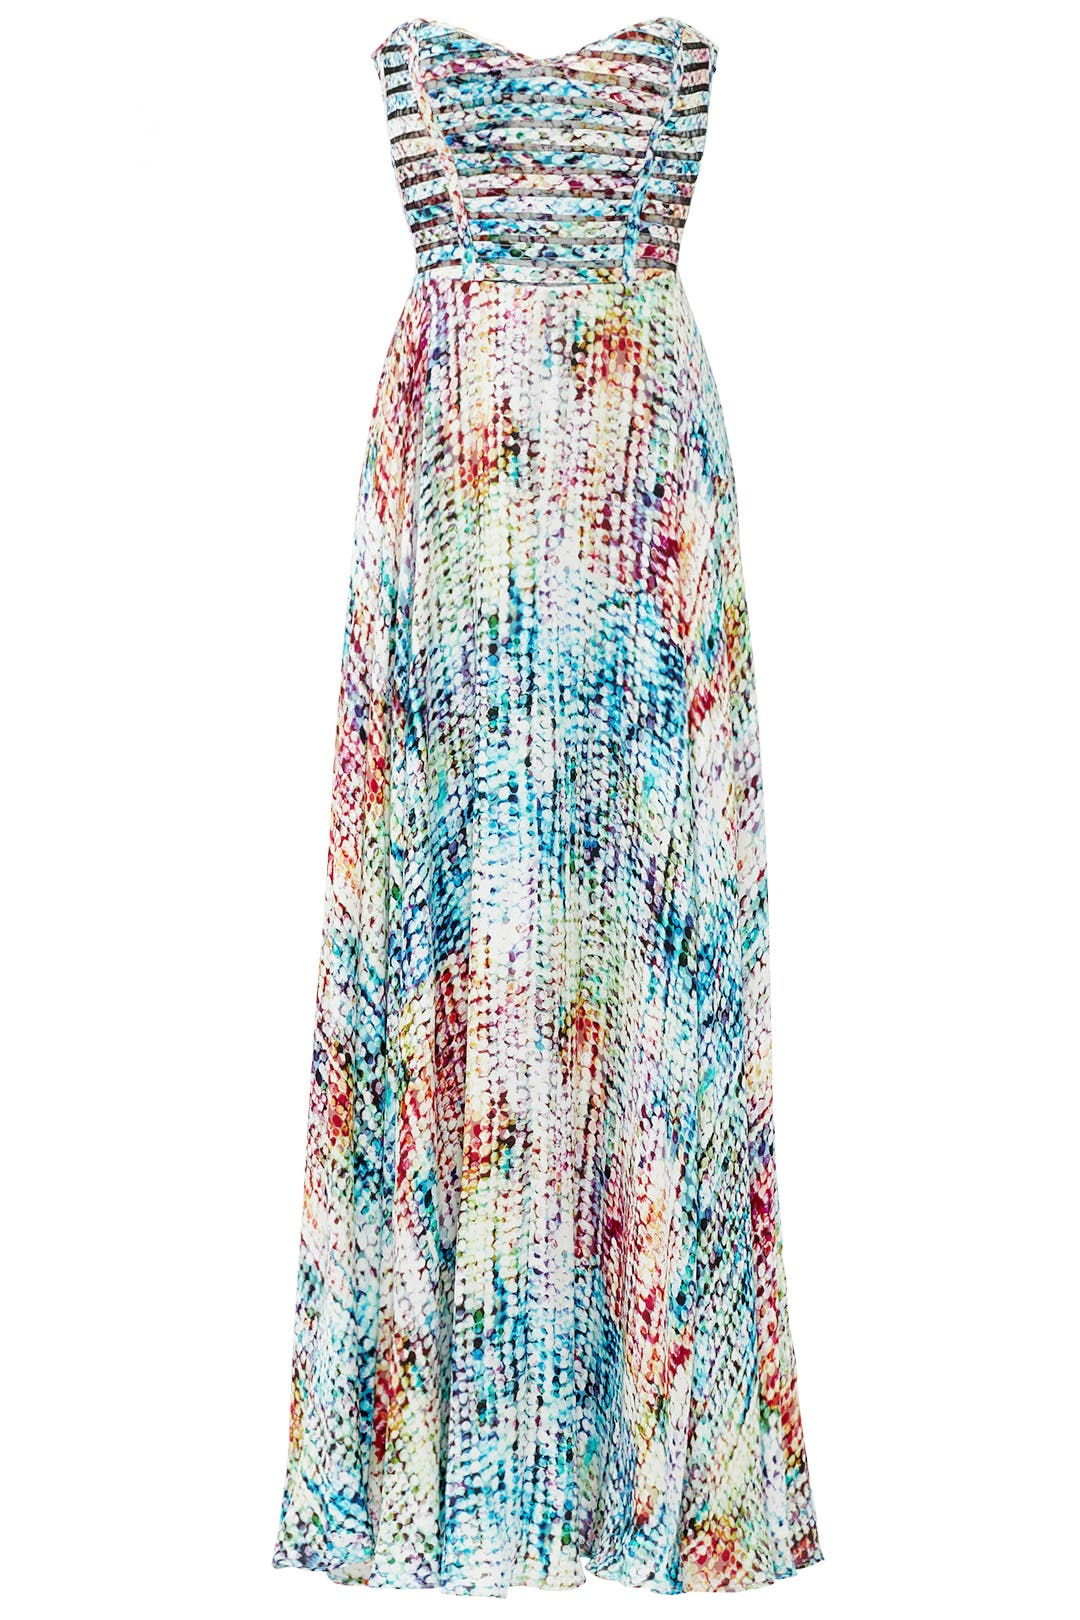 Rainbow Maxi Dress by Parker for $70 - $105 | Rent the Runway